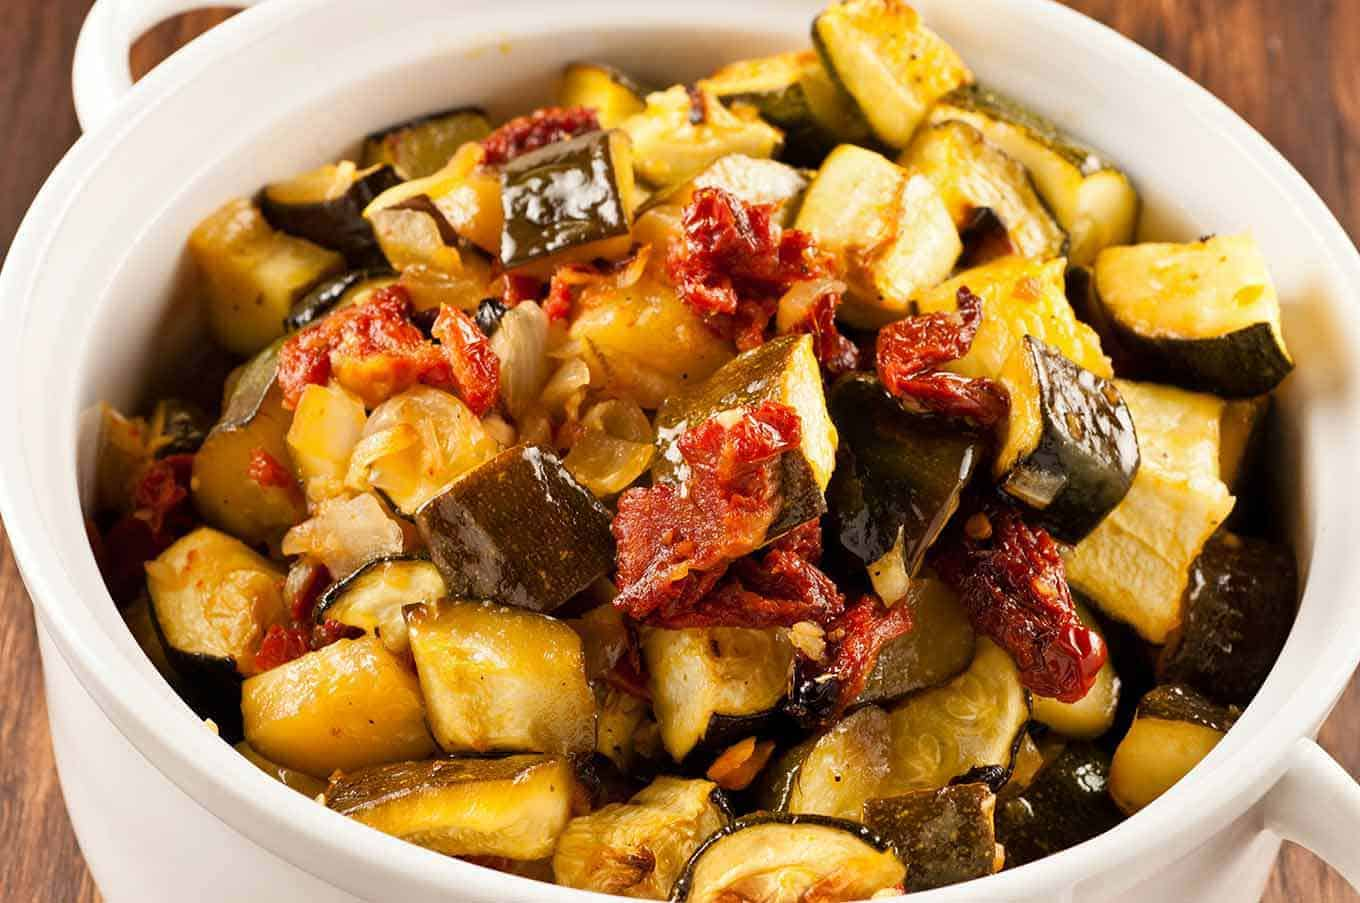 Braised zucchini with tomatoes. The most delicious recipes 61